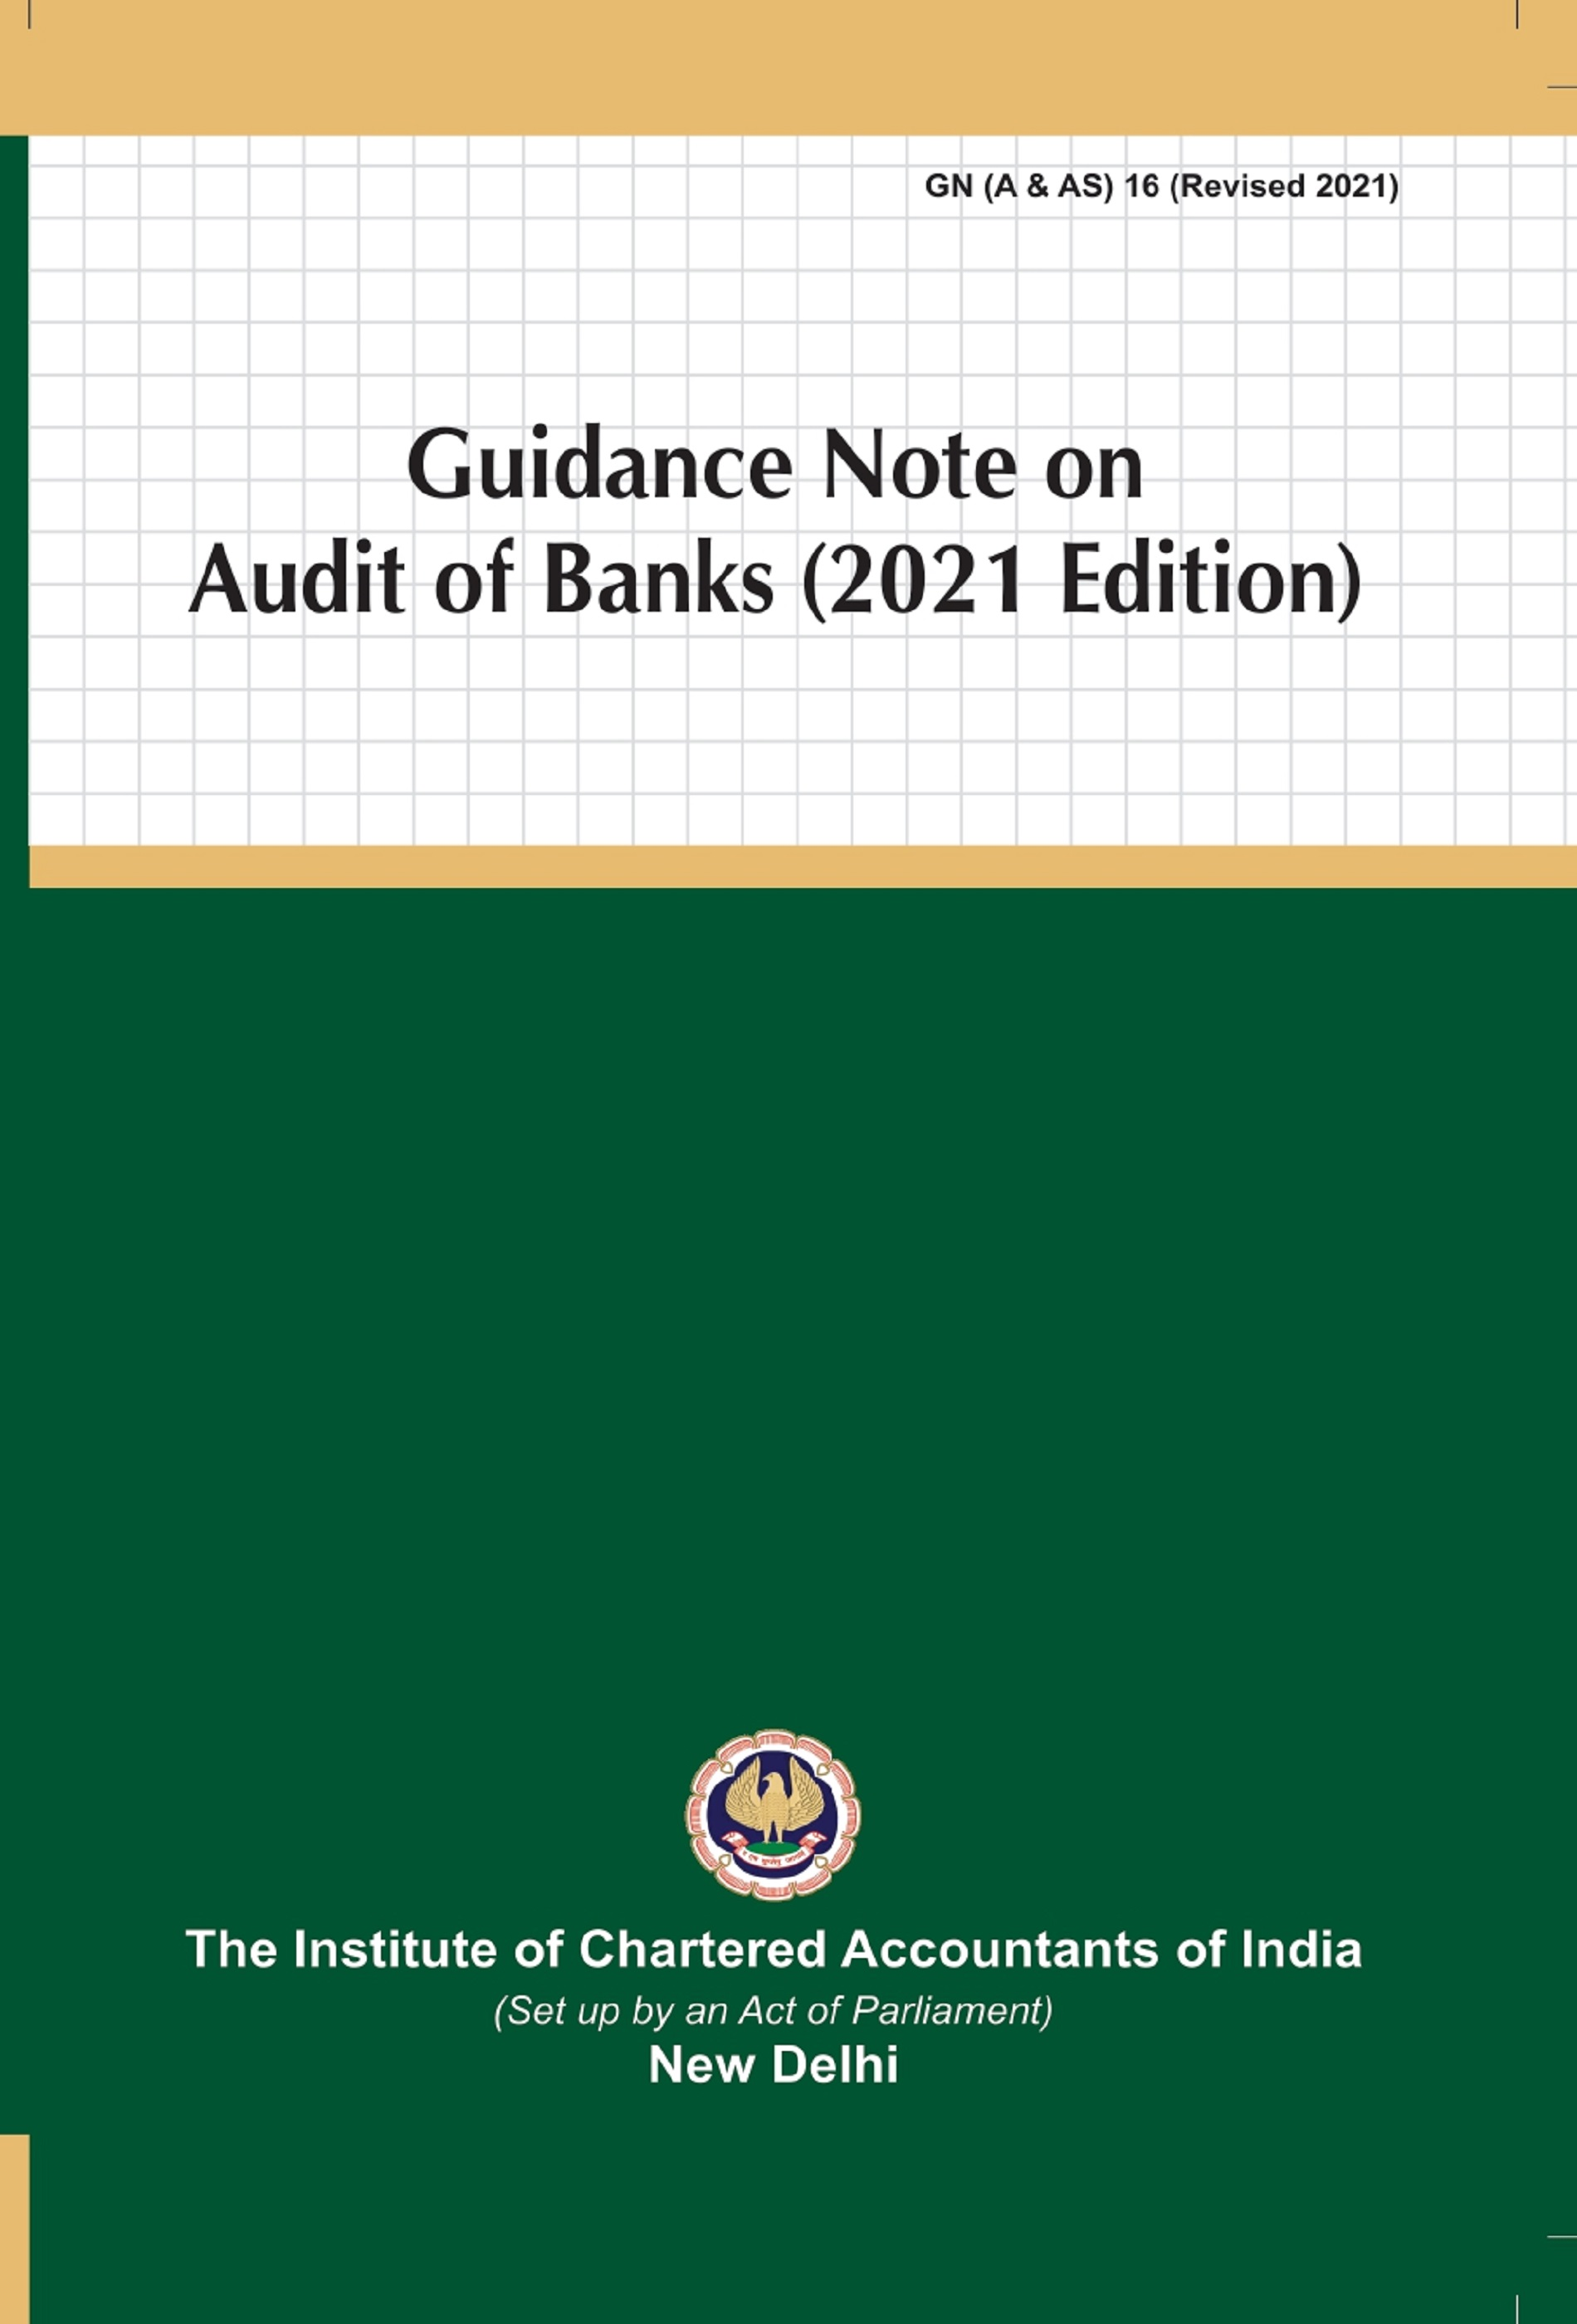 Guidance Note on Audit of Banks (2021 Edition)